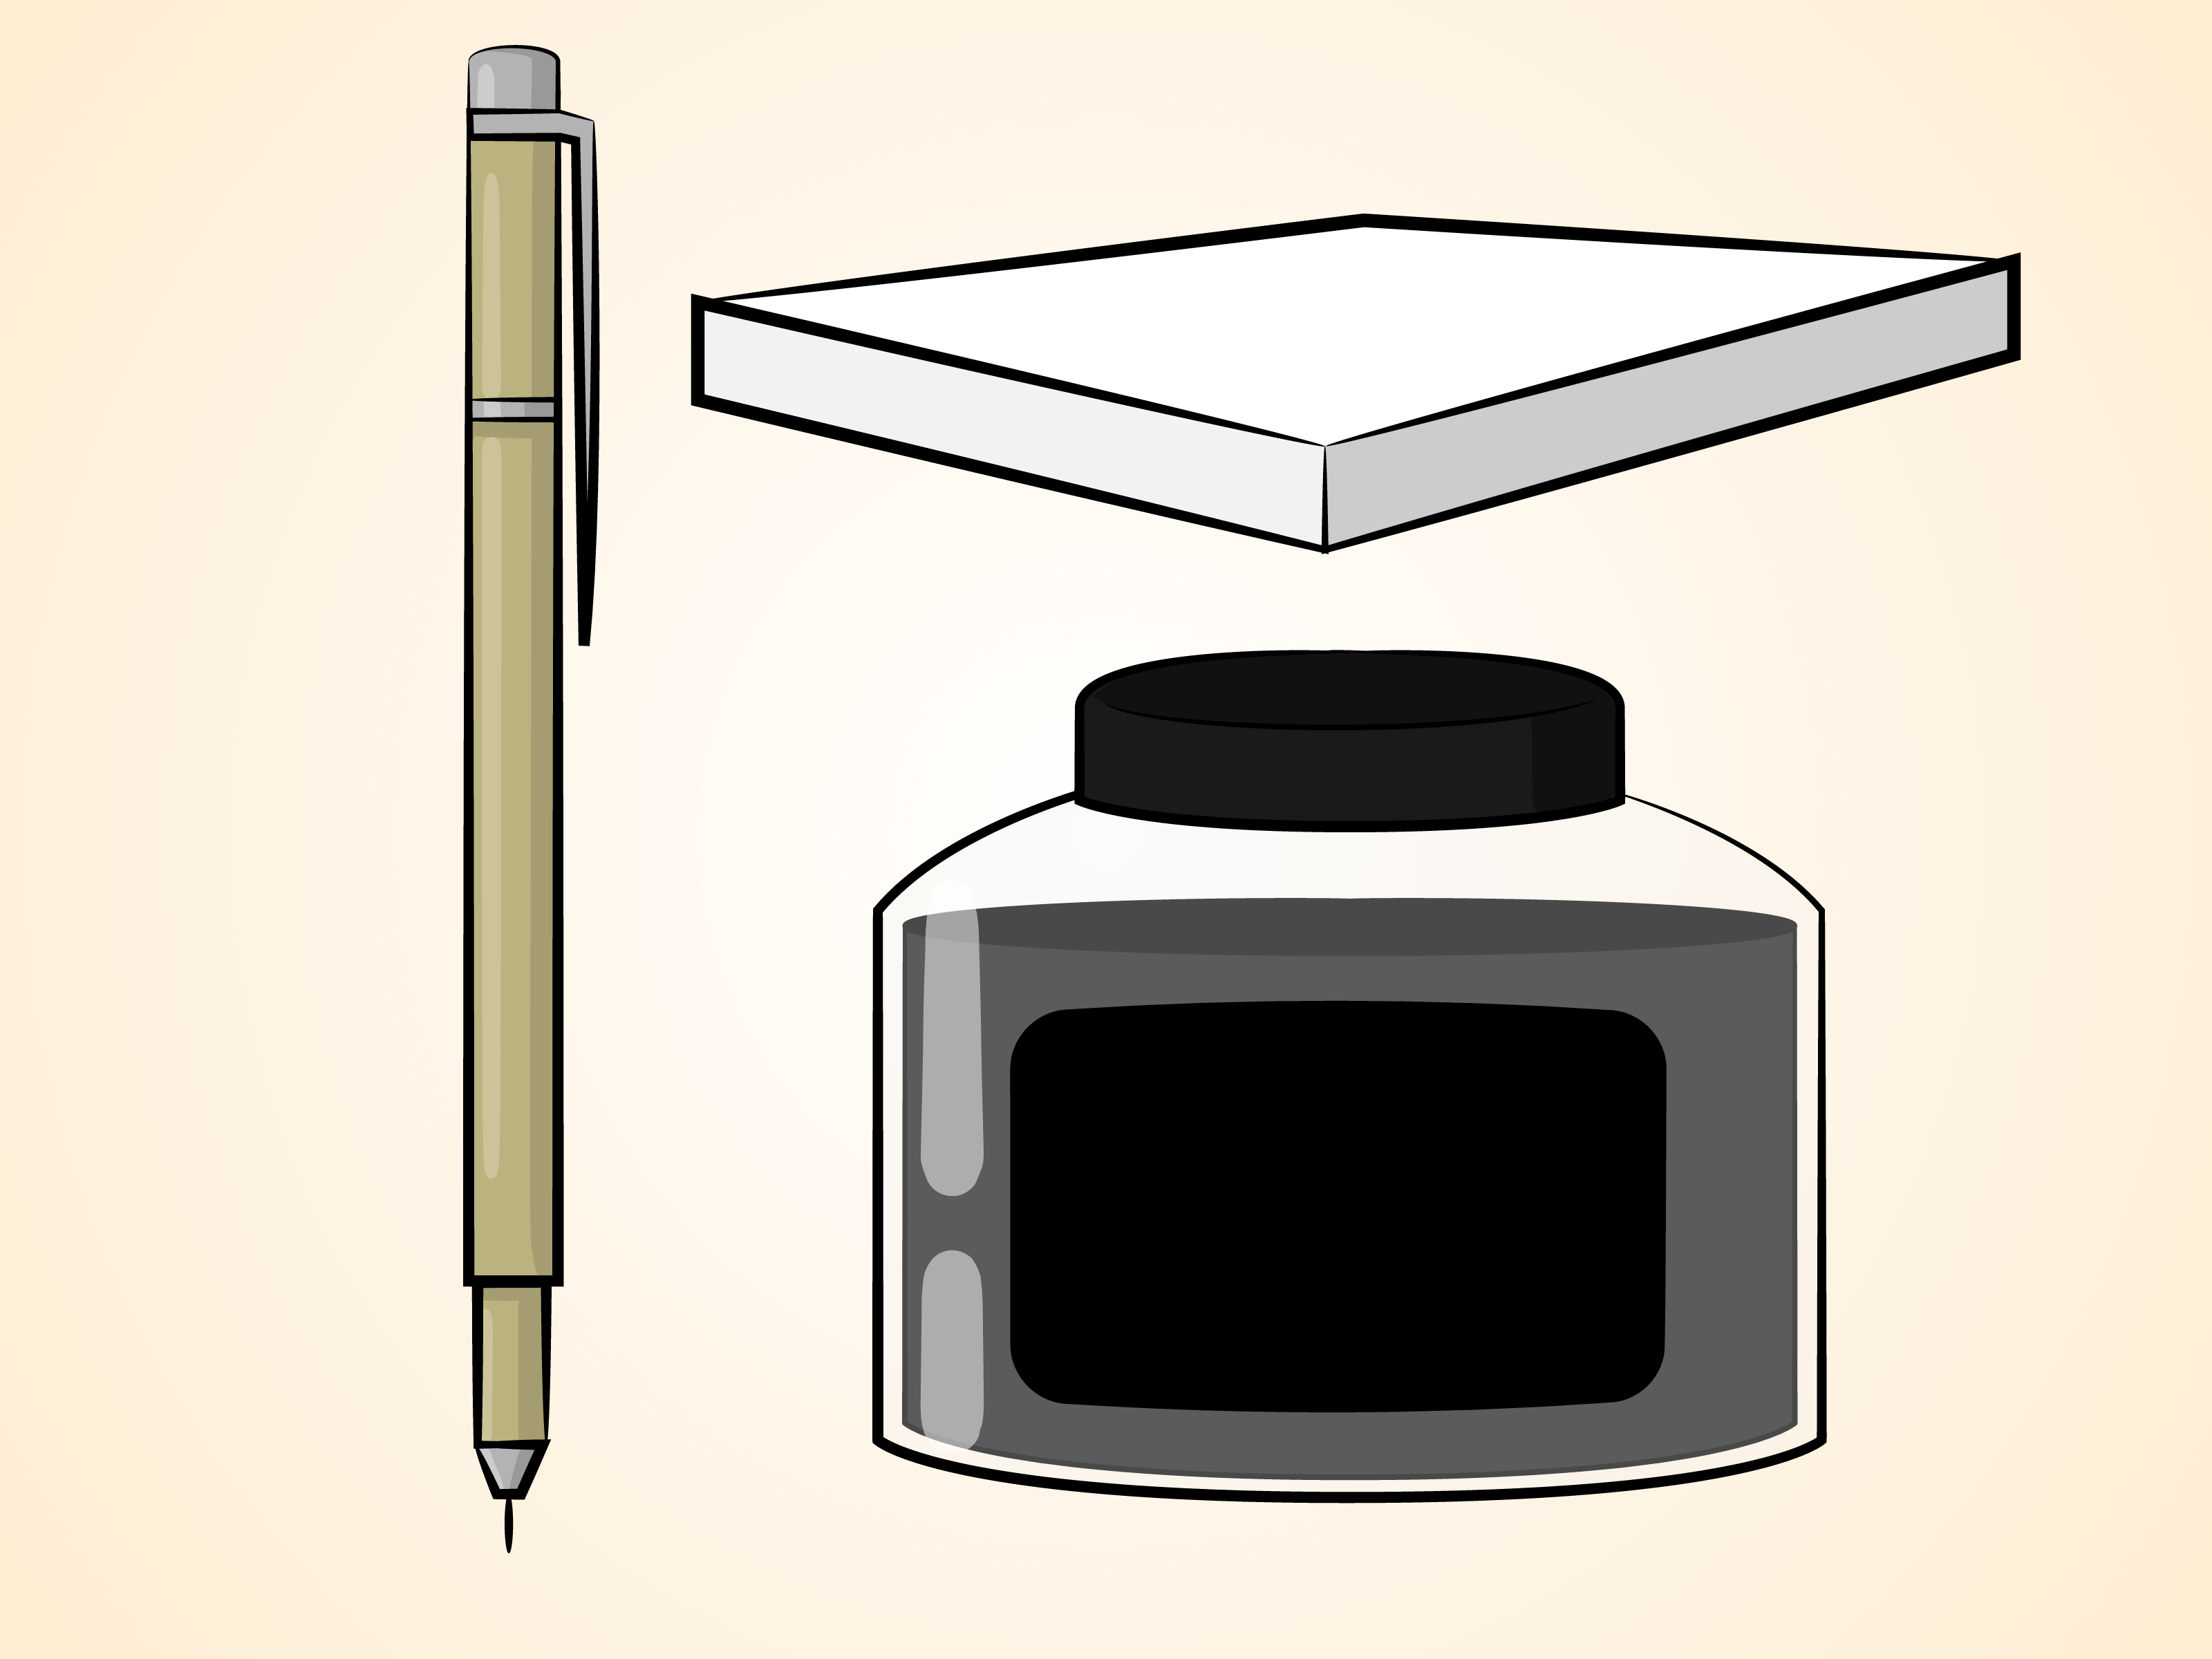 3200x2400 How To Ink A Drawing Steps